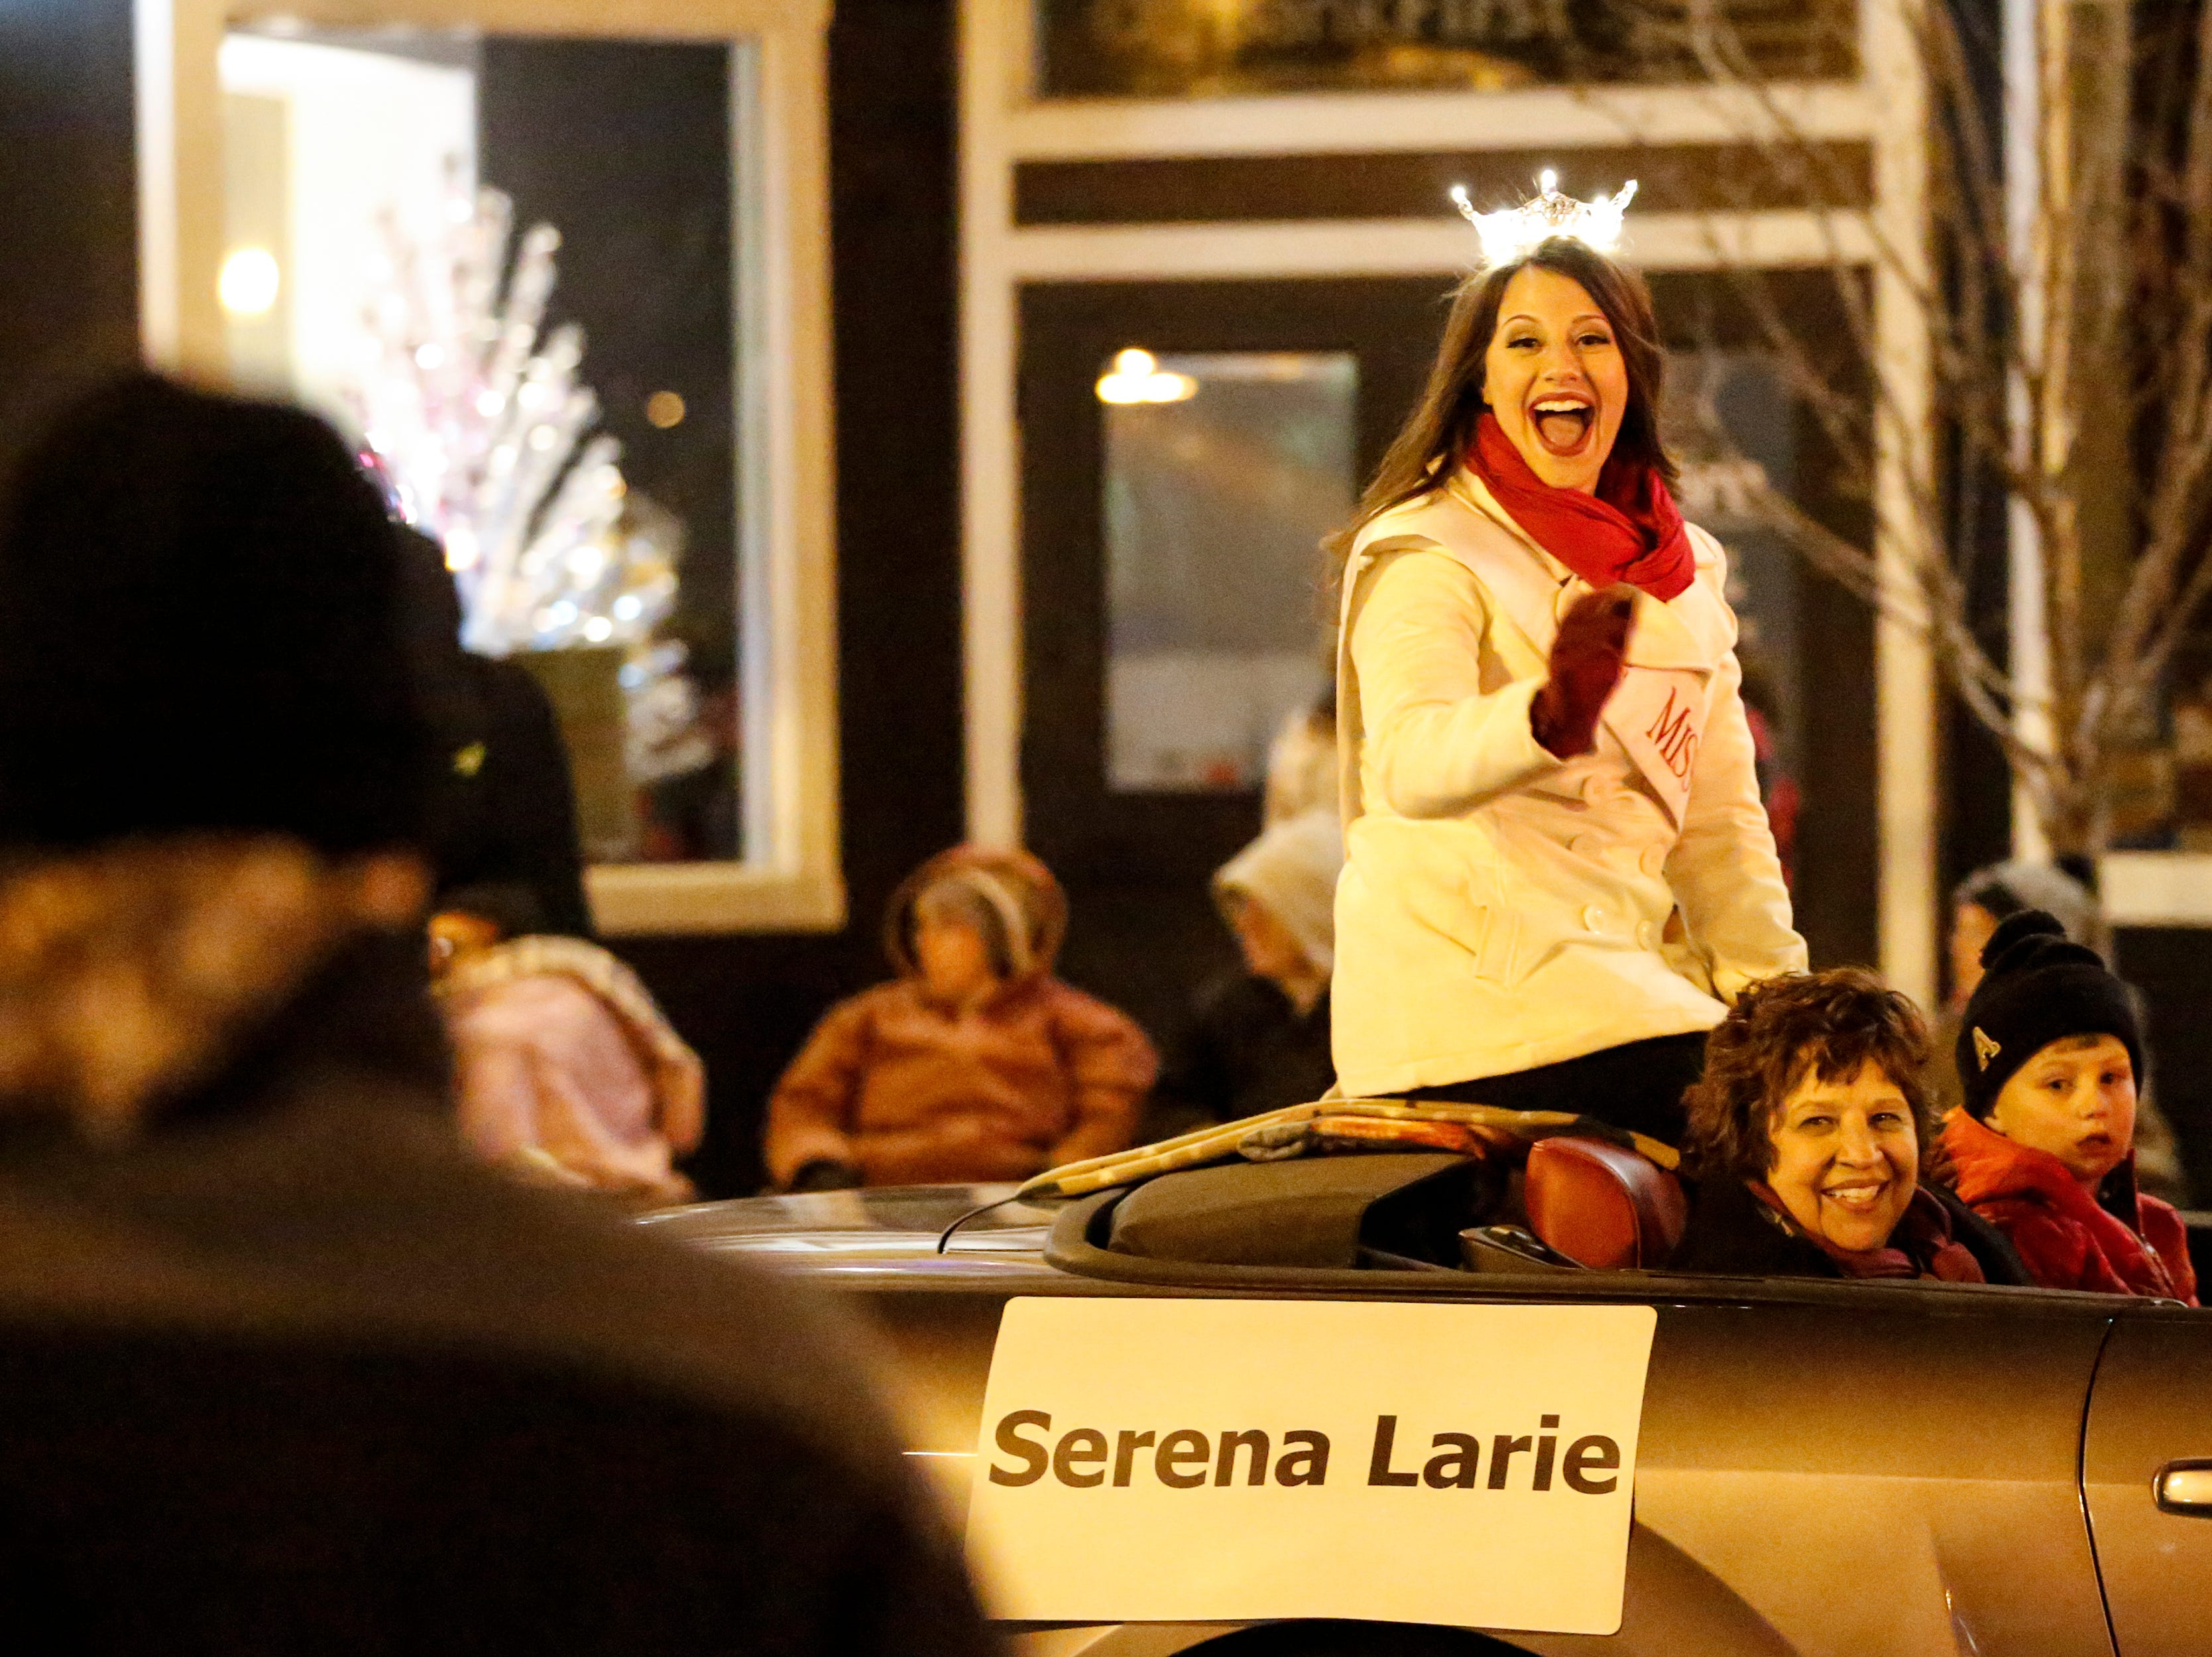 """Miss Harbor Cities Serena Larie waves to fans during the 30th Annual Lakeshore Holiday Parade Wednesday, November 21, 2018, in Manitowoc, Wis. This year's theme was """"Christmas Through the Decades."""" Joshua Clark/USA TODAY NETWORK-Wisconsin"""